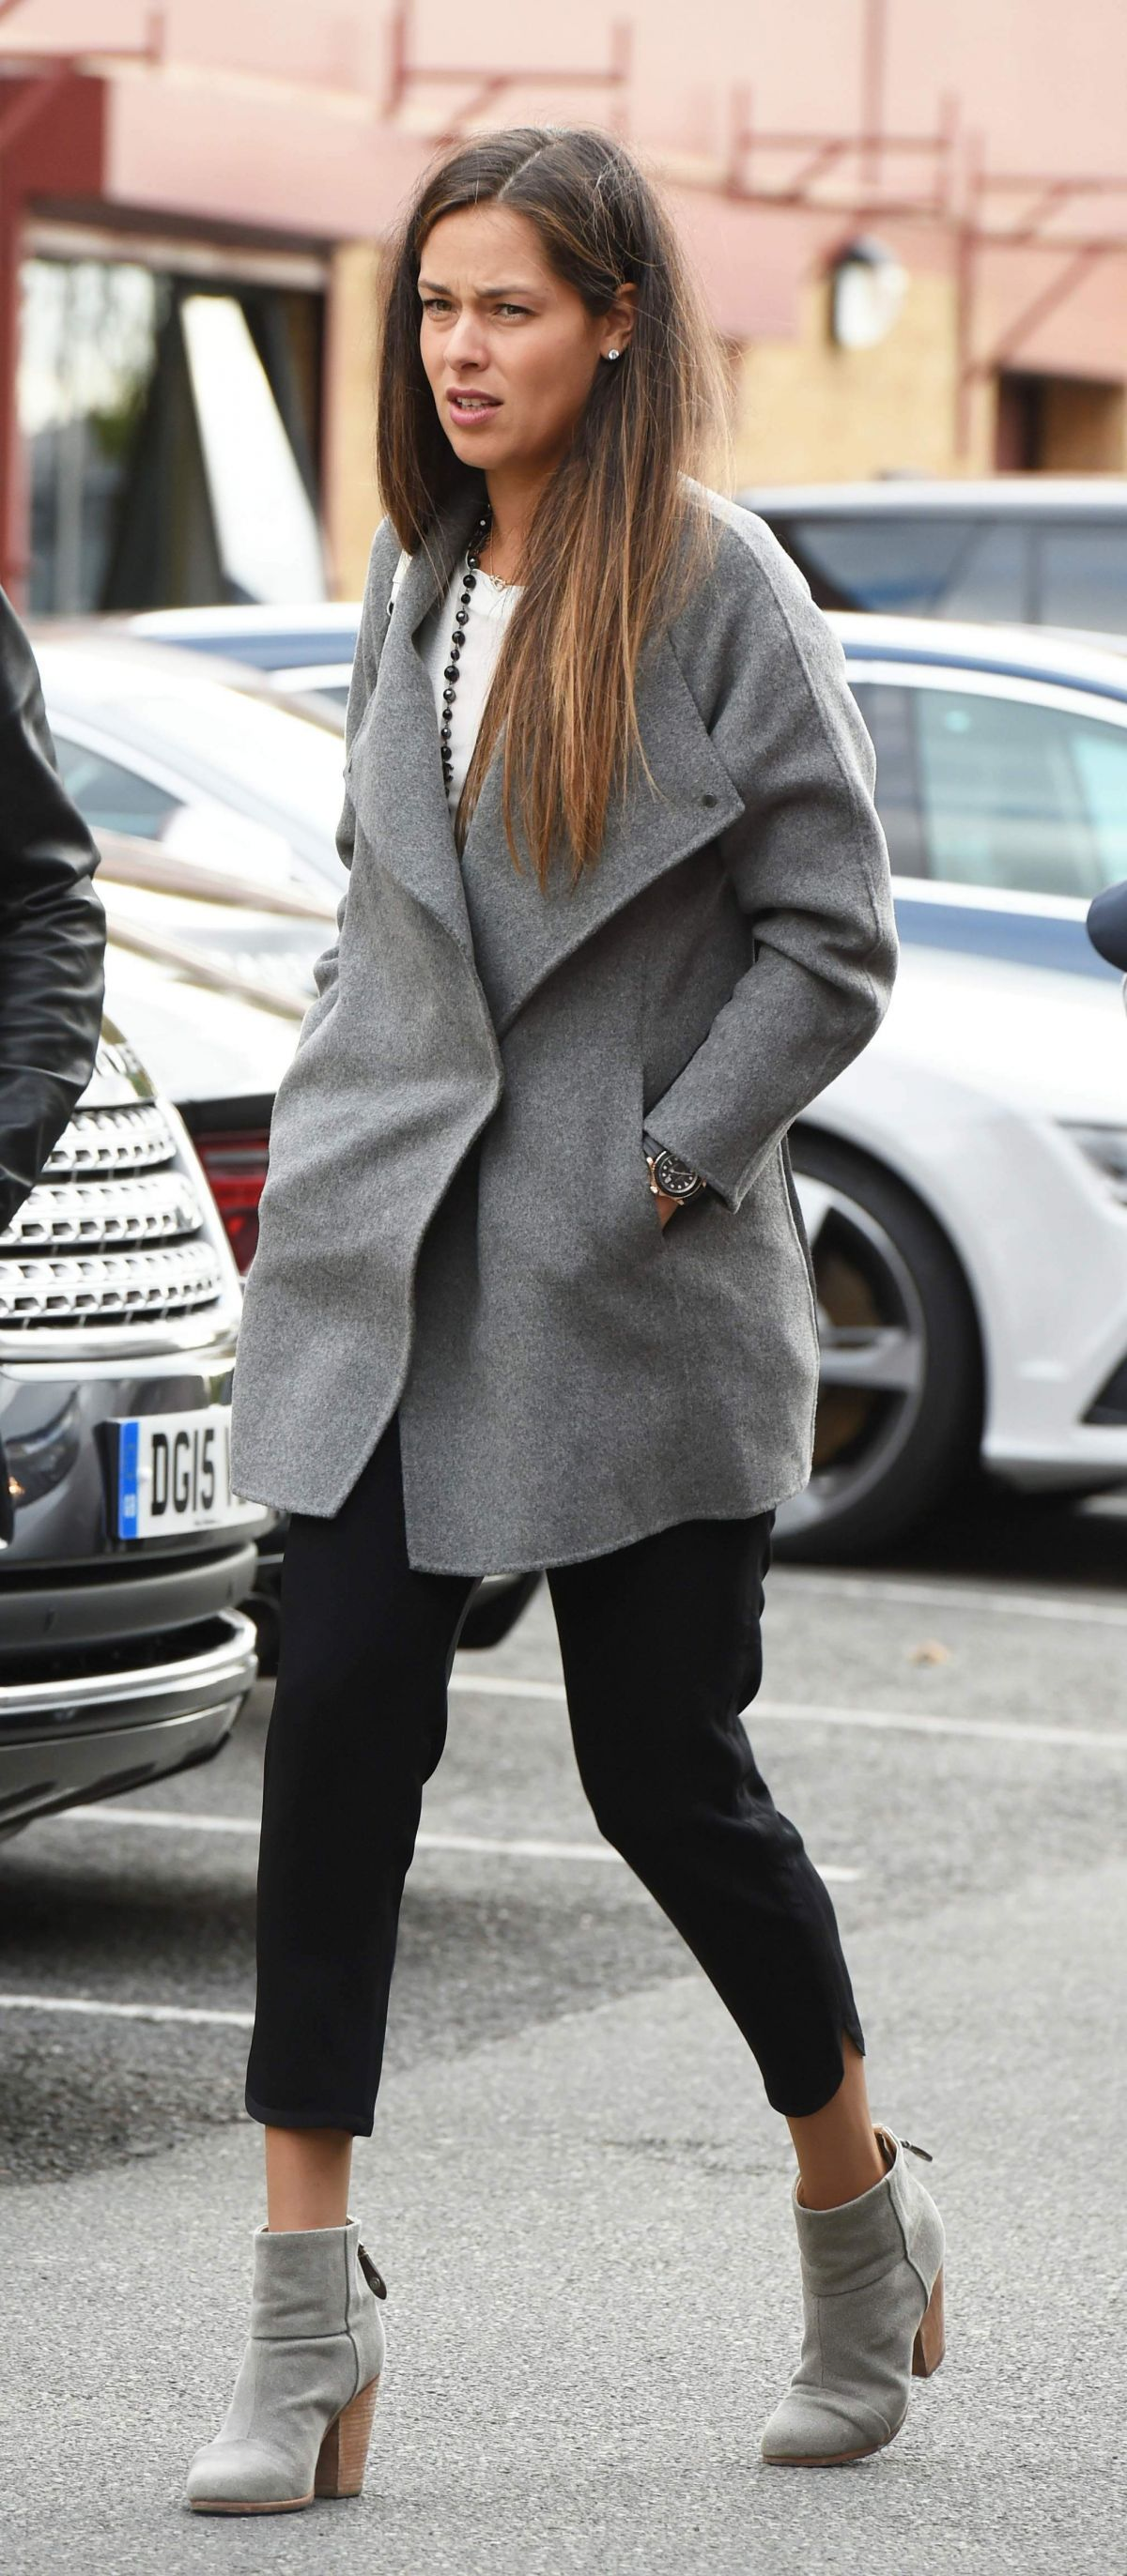 ANA IVANOVIC Arrives at Old Trafford to Watch Machester United vs Liverpool 09/12/2015